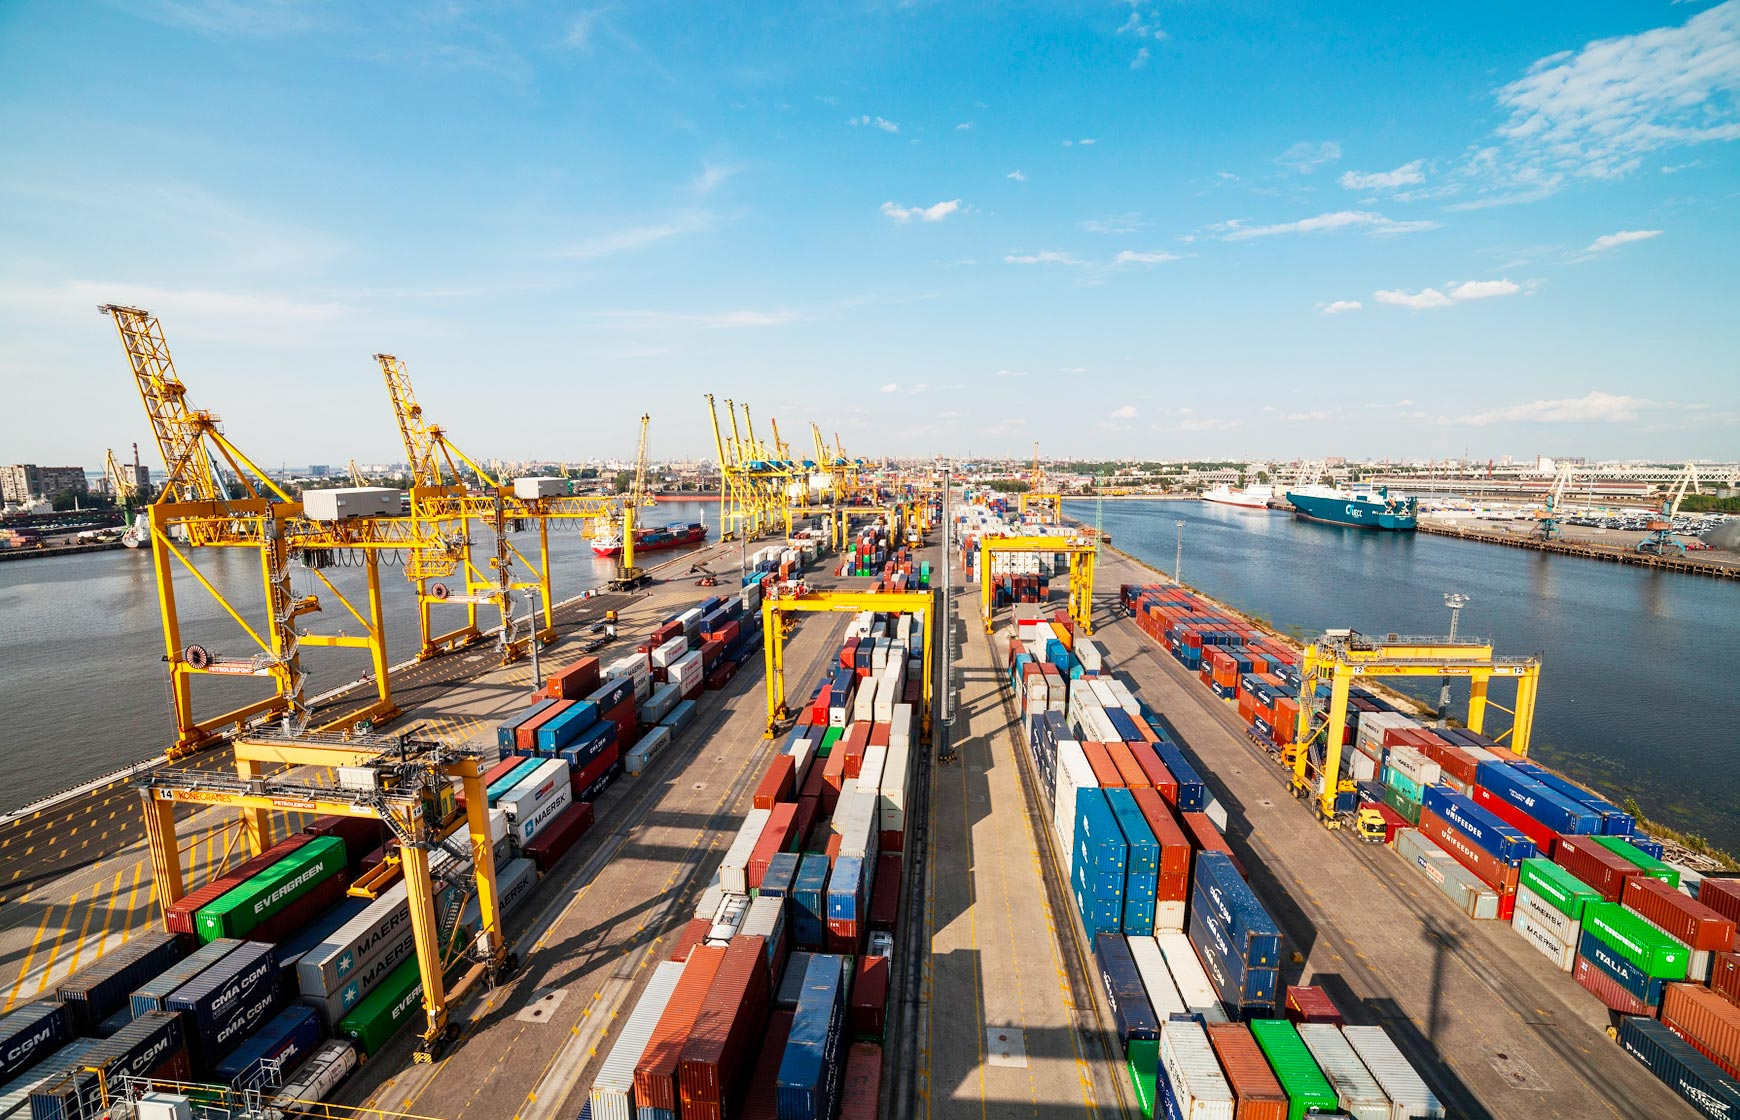 First Container Terminal (FCT) is located in the harbor of the Port of St. Petersburg